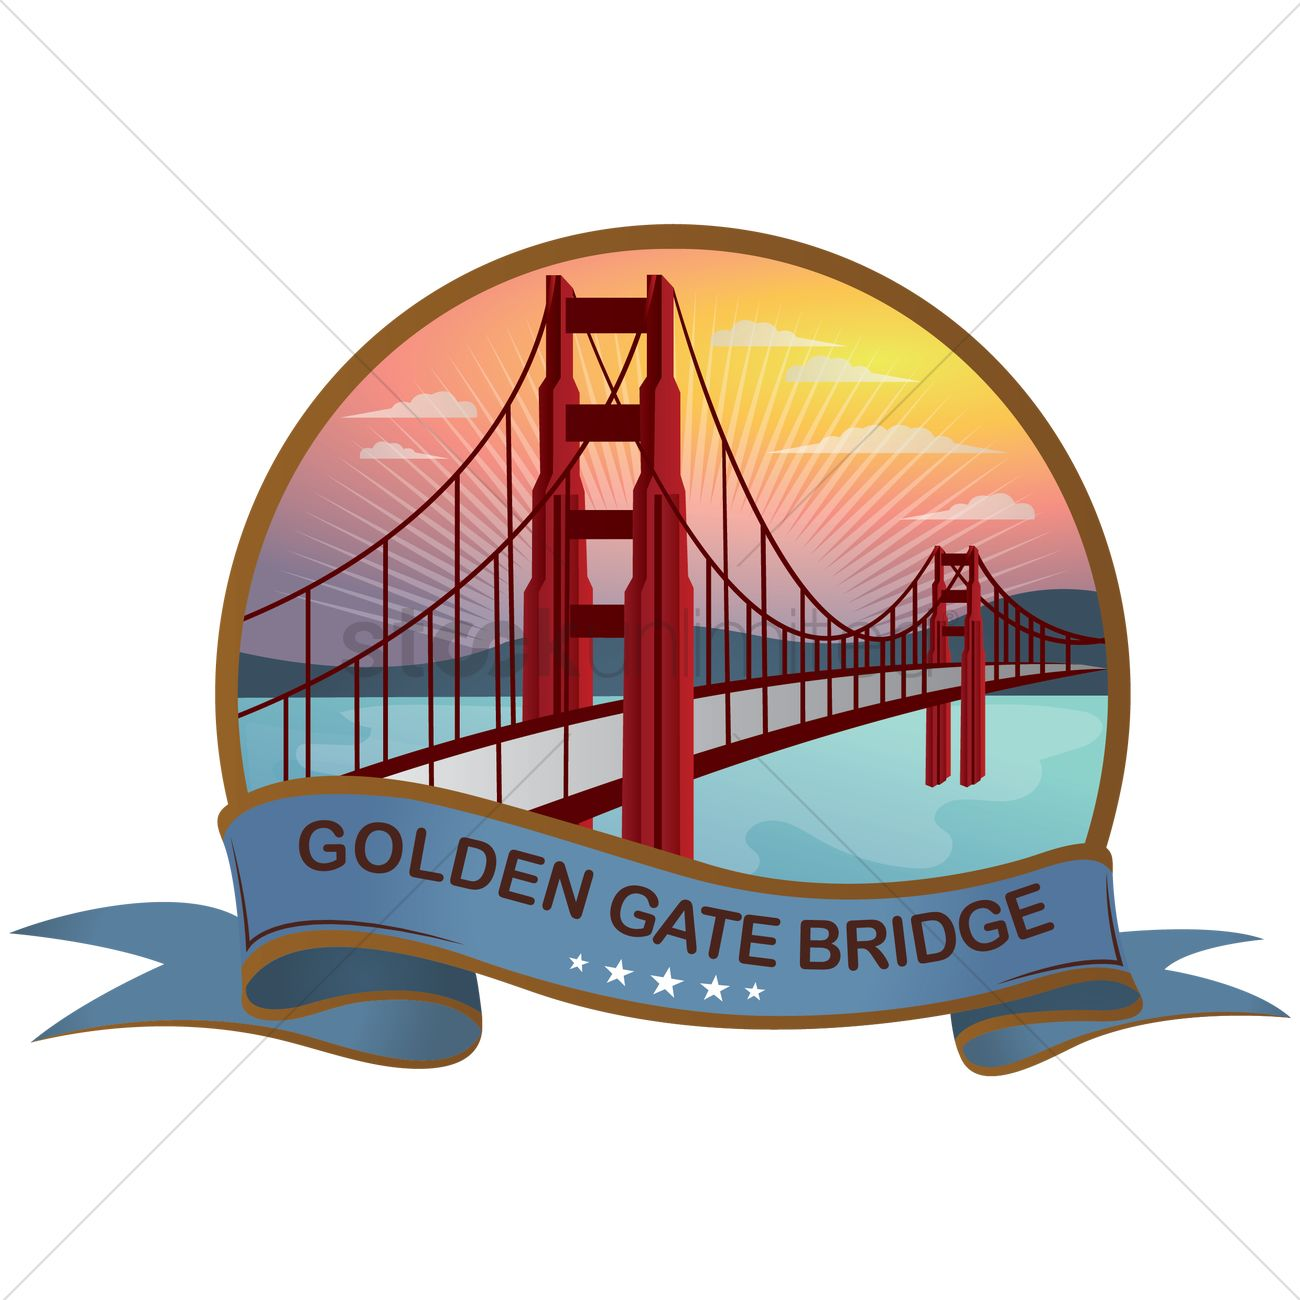 Golden Gate Bridge Vector Image 1569058 Stockunlimited